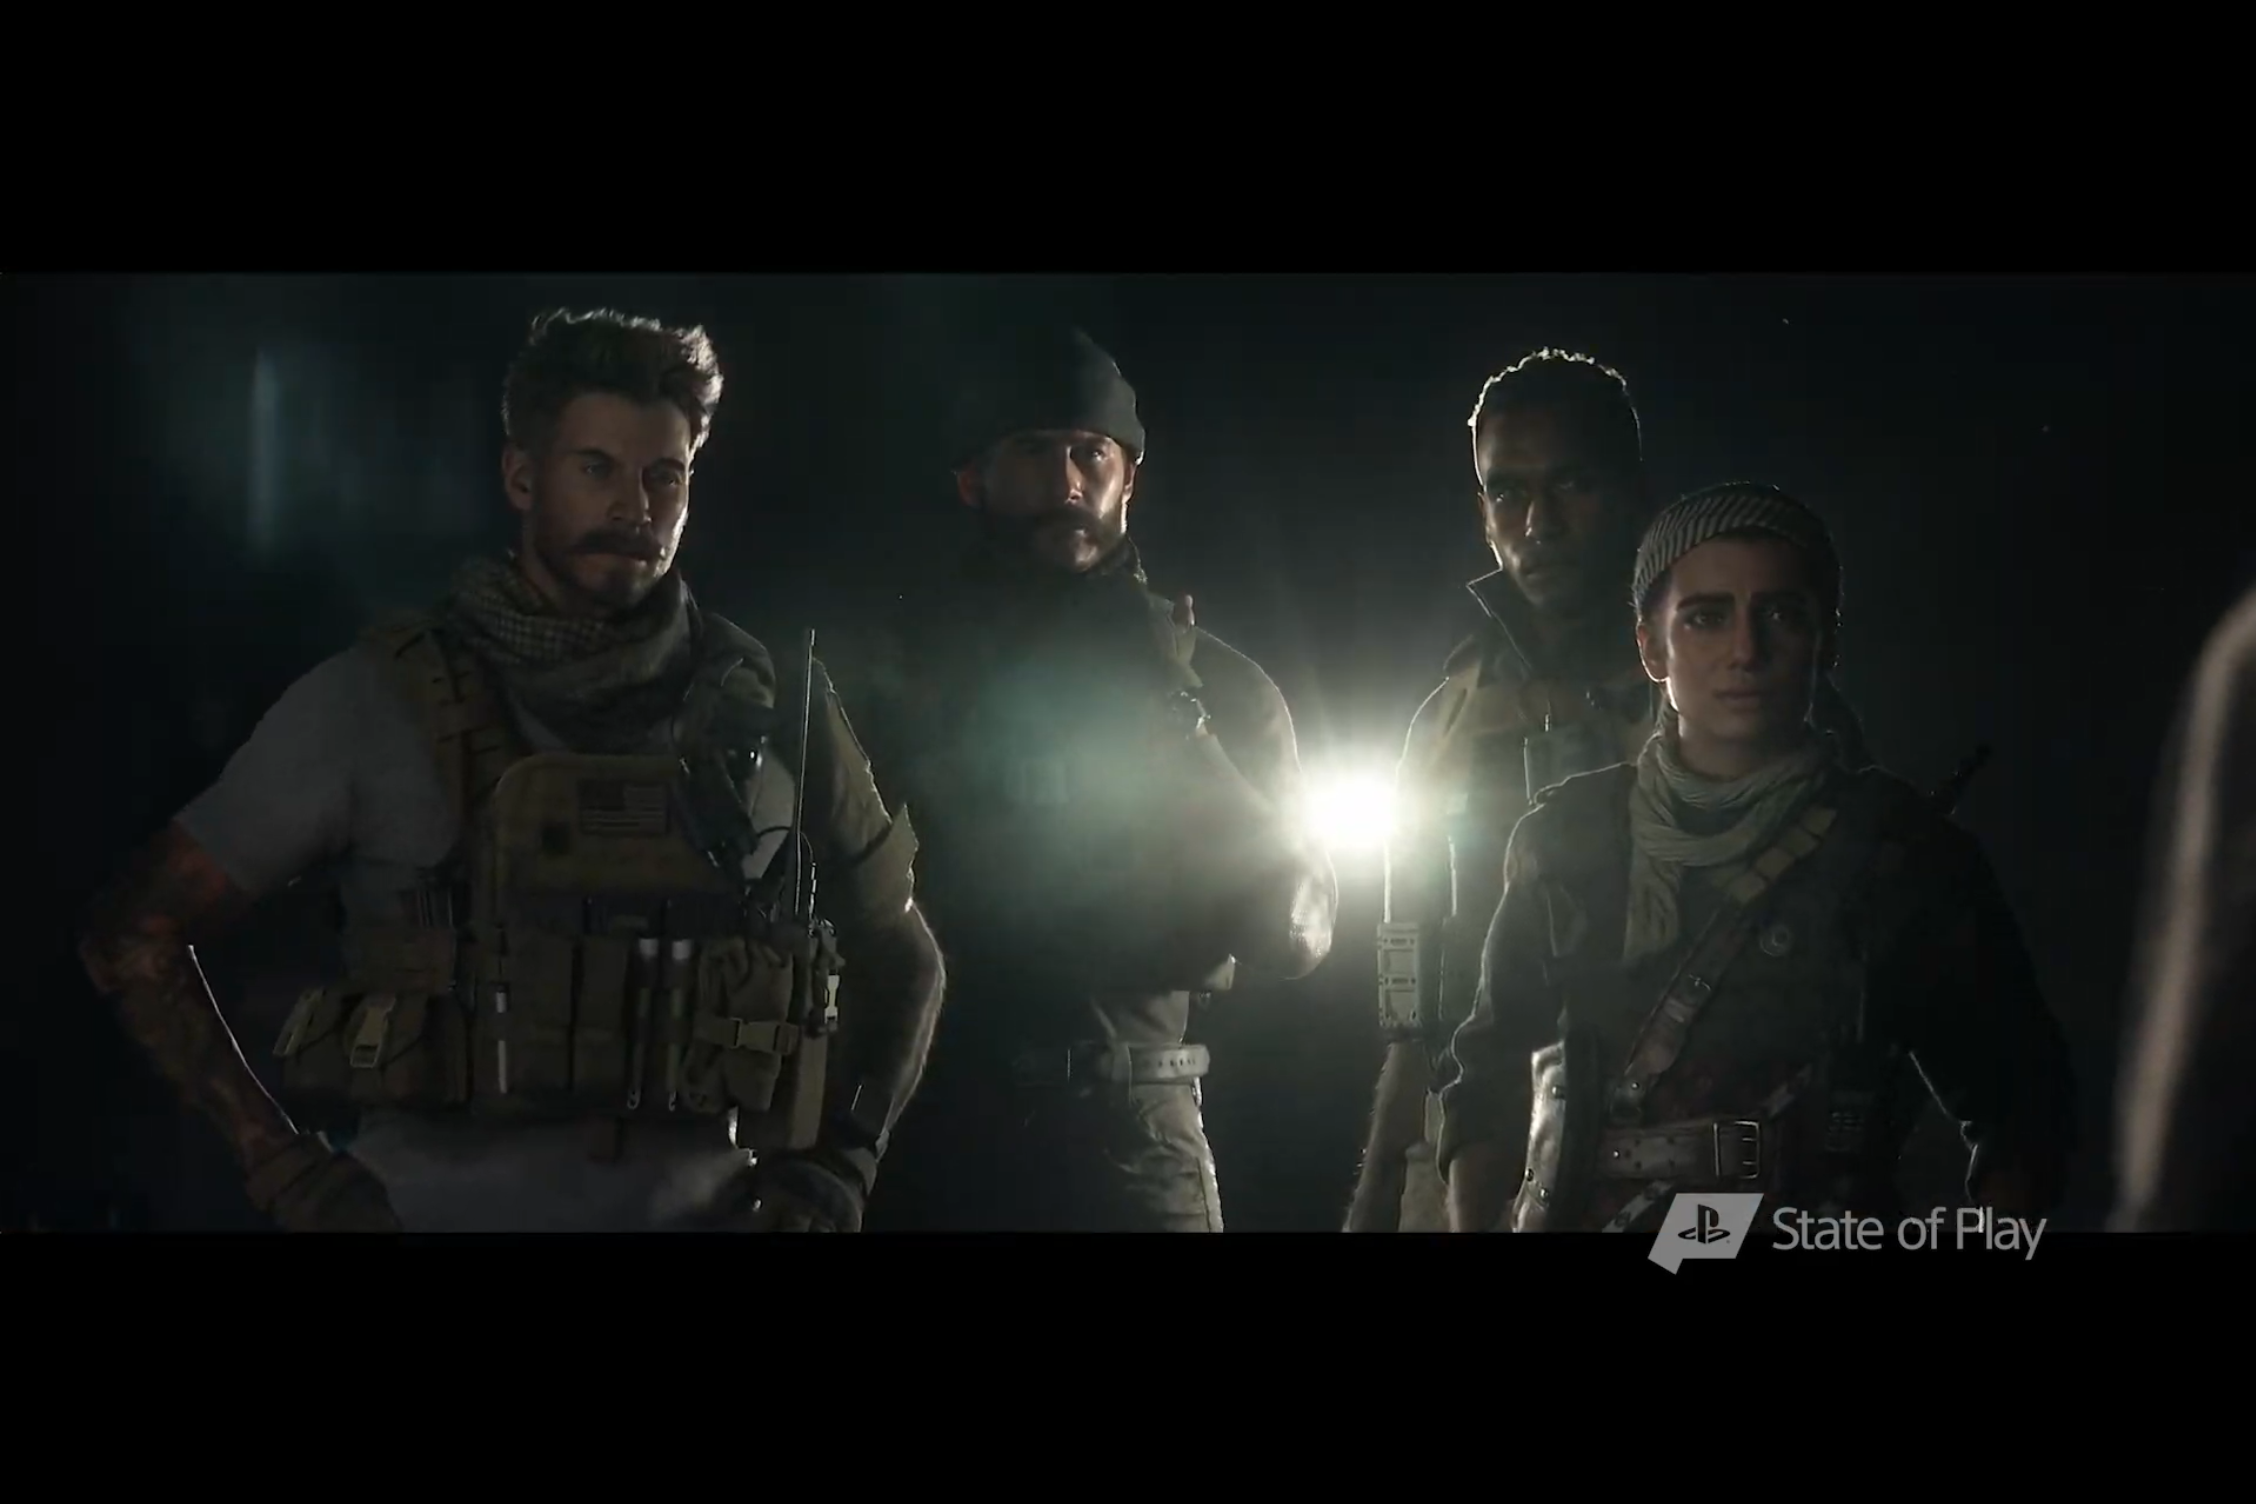 The cast of heroes, old and new, leading the new <em>Call of Duty: Modern Warfare</em> campaign this October.